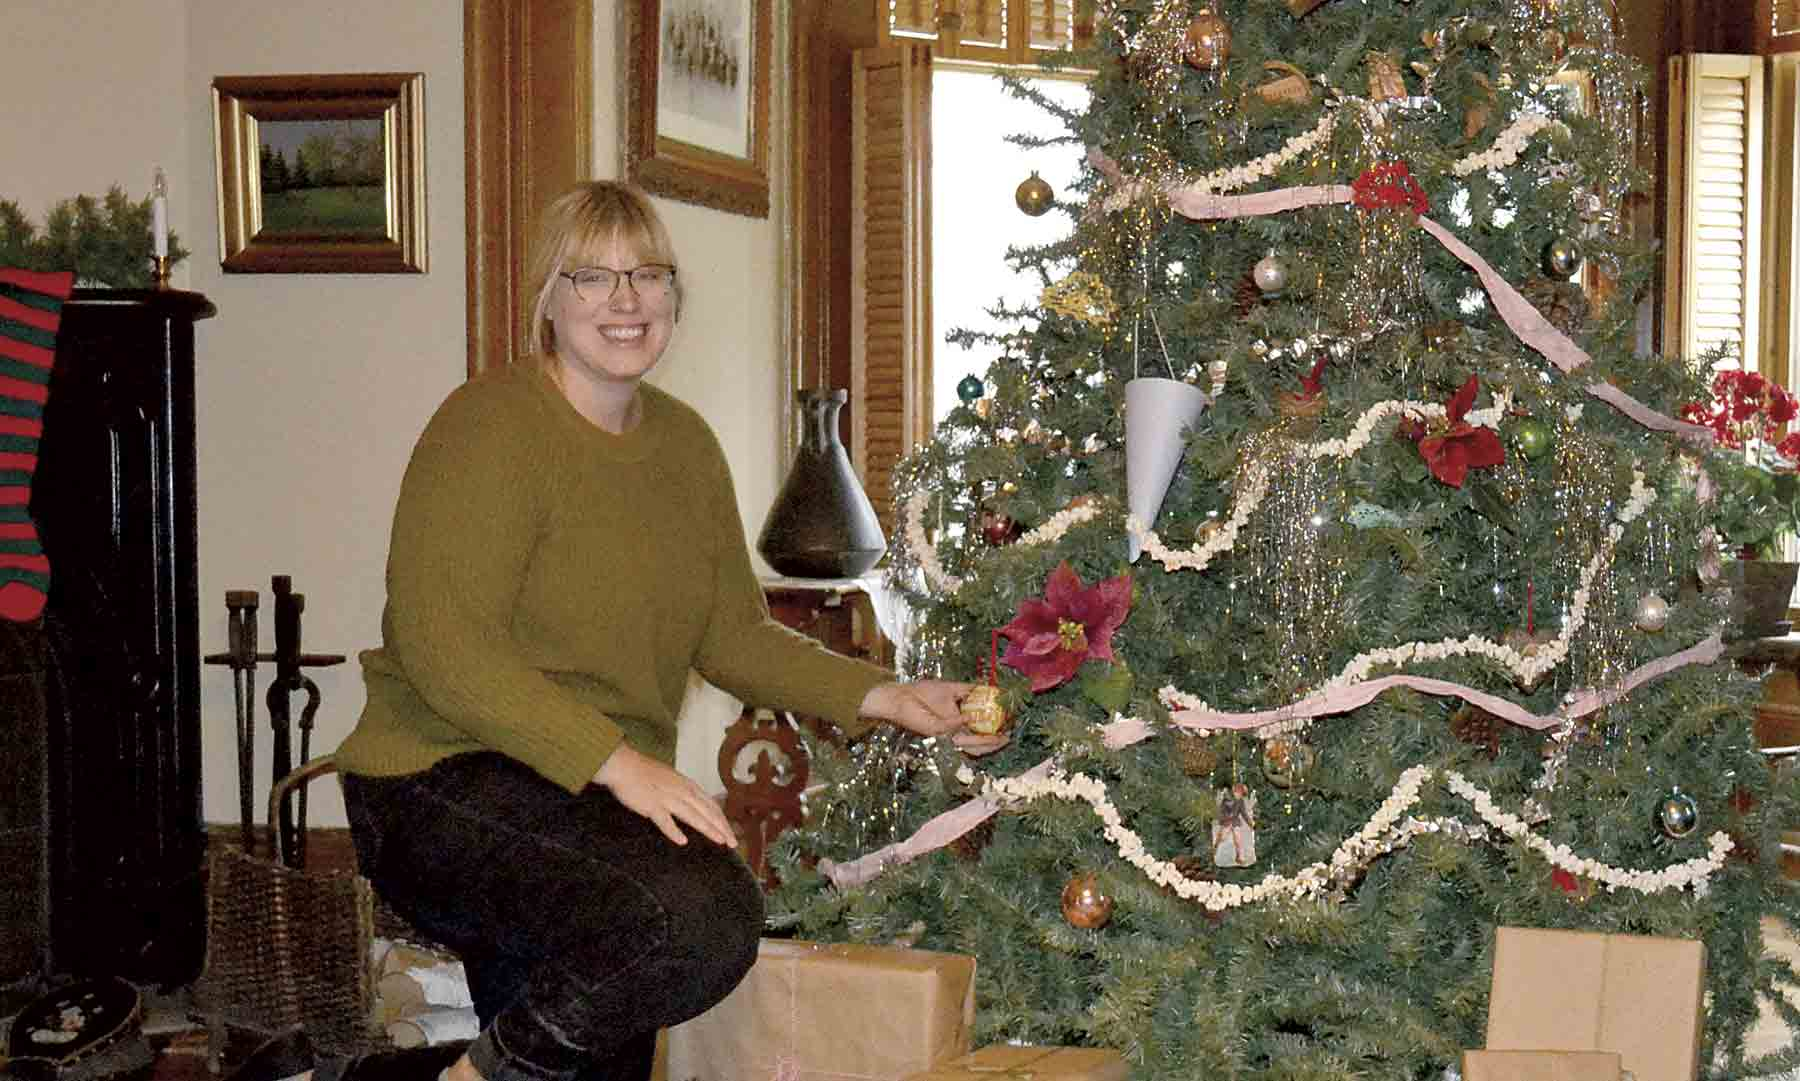 Hannah Frederick, Montauk Site coordinator decided to follow a classic Victorian style of decorating for this years Montauk Holiday Open House on Saturday December 7 and Sunday December 8.According to Frederick, the Larrabee family's Christmas decorating style would have been much...